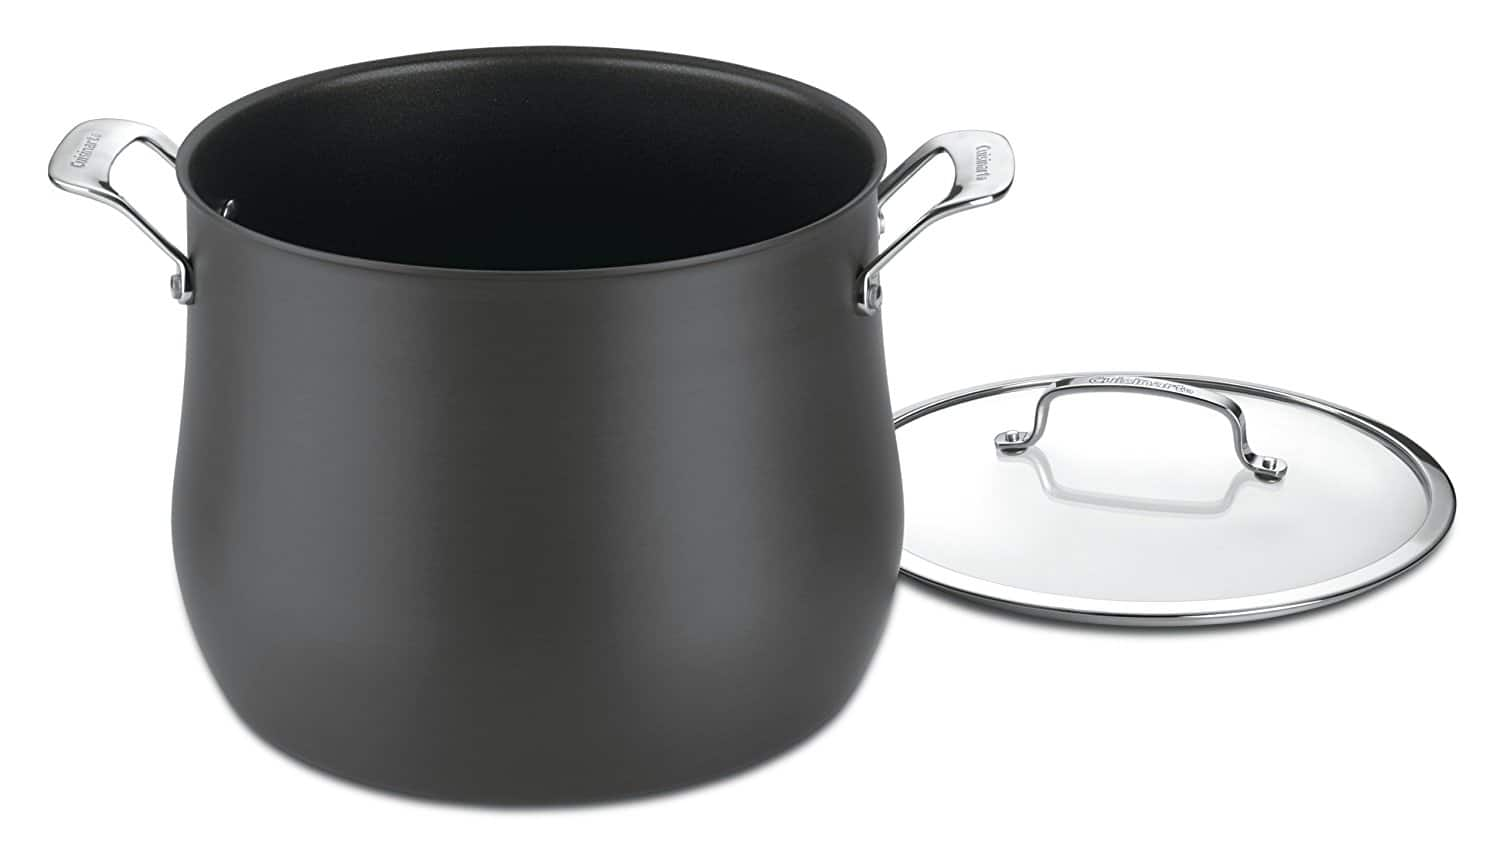 Cuisinart  Contour Hard Anodized 12-Quart Stockpot with Cover $36 @ Amazon